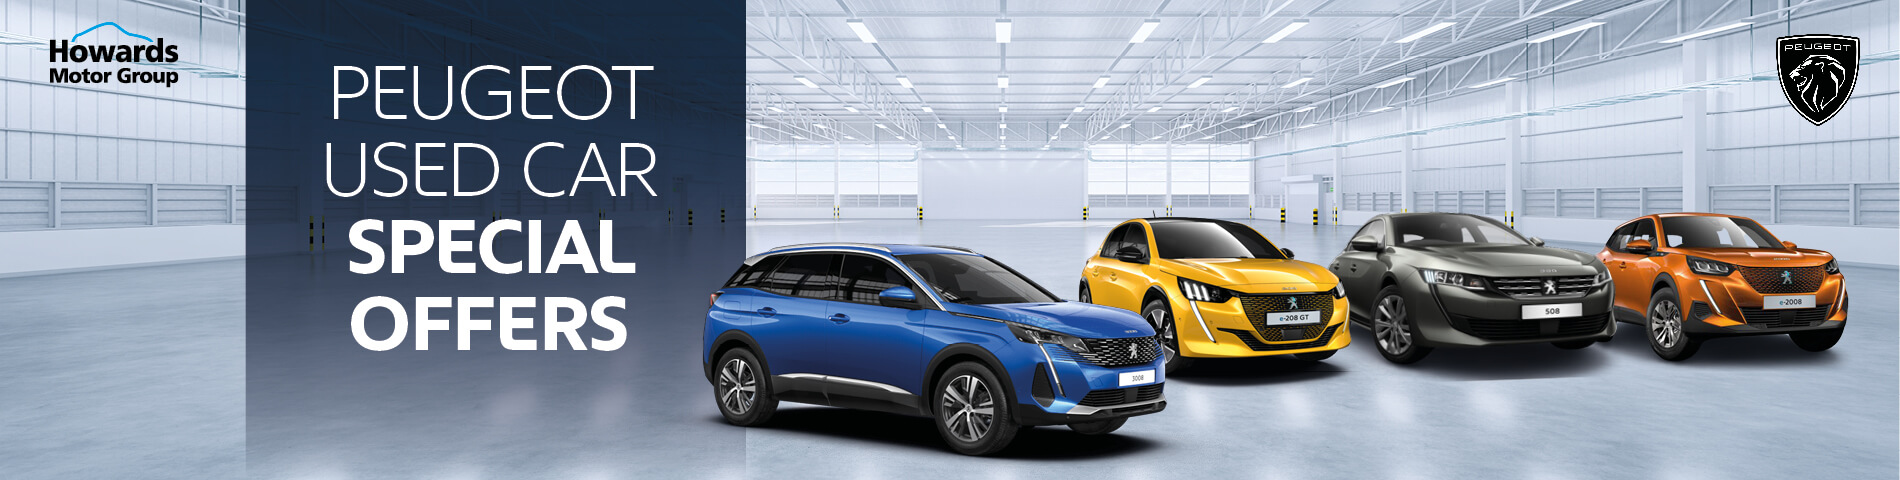 Howards Peugeot Used Car Offers